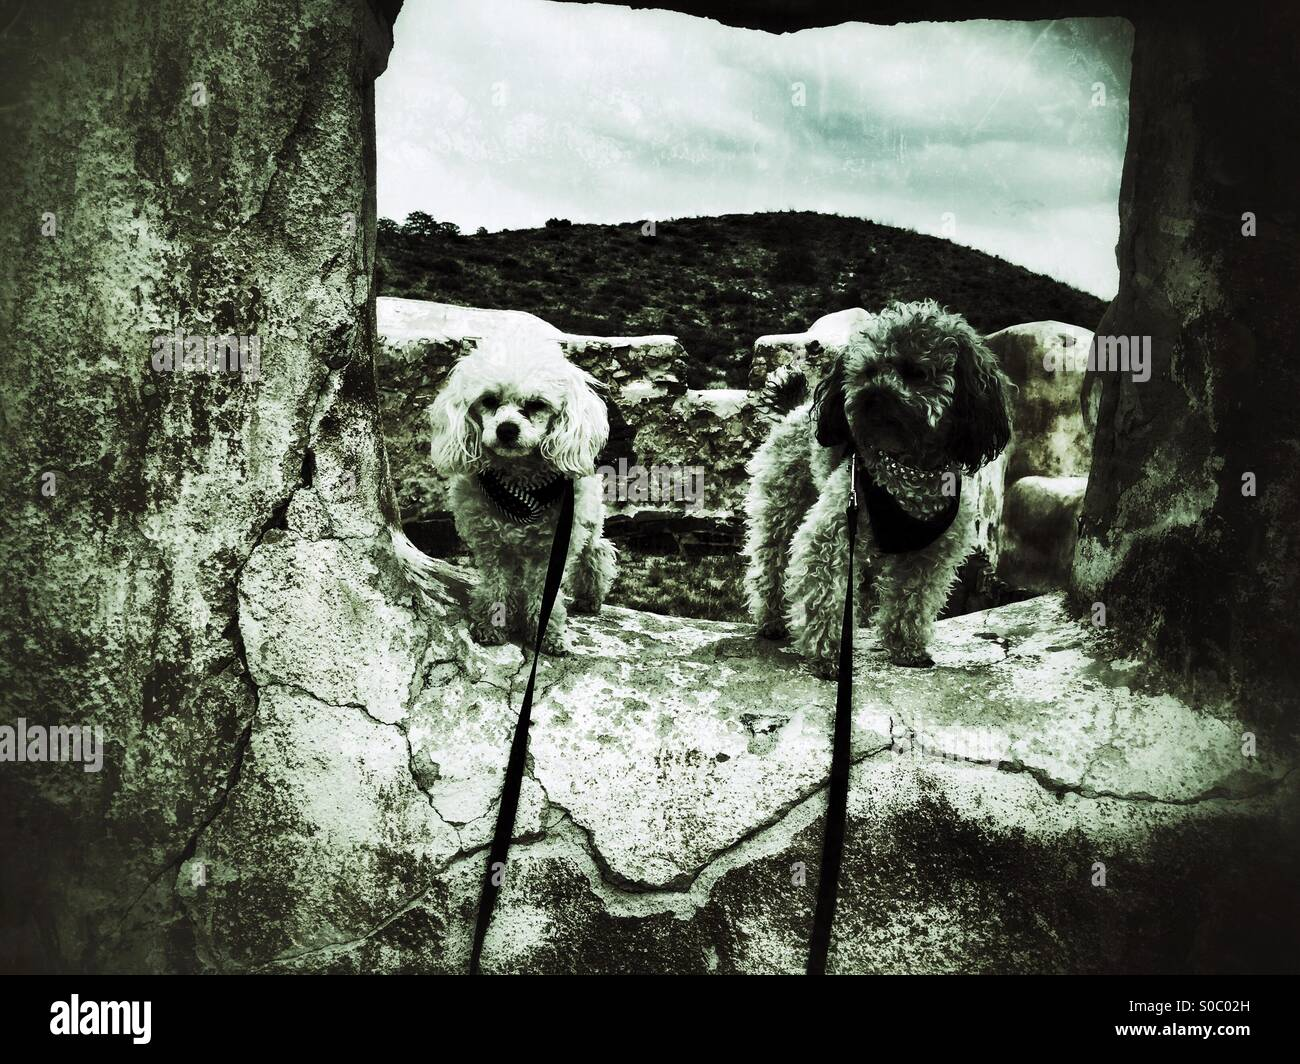 Poodles at Fort Bowie - Stock Image